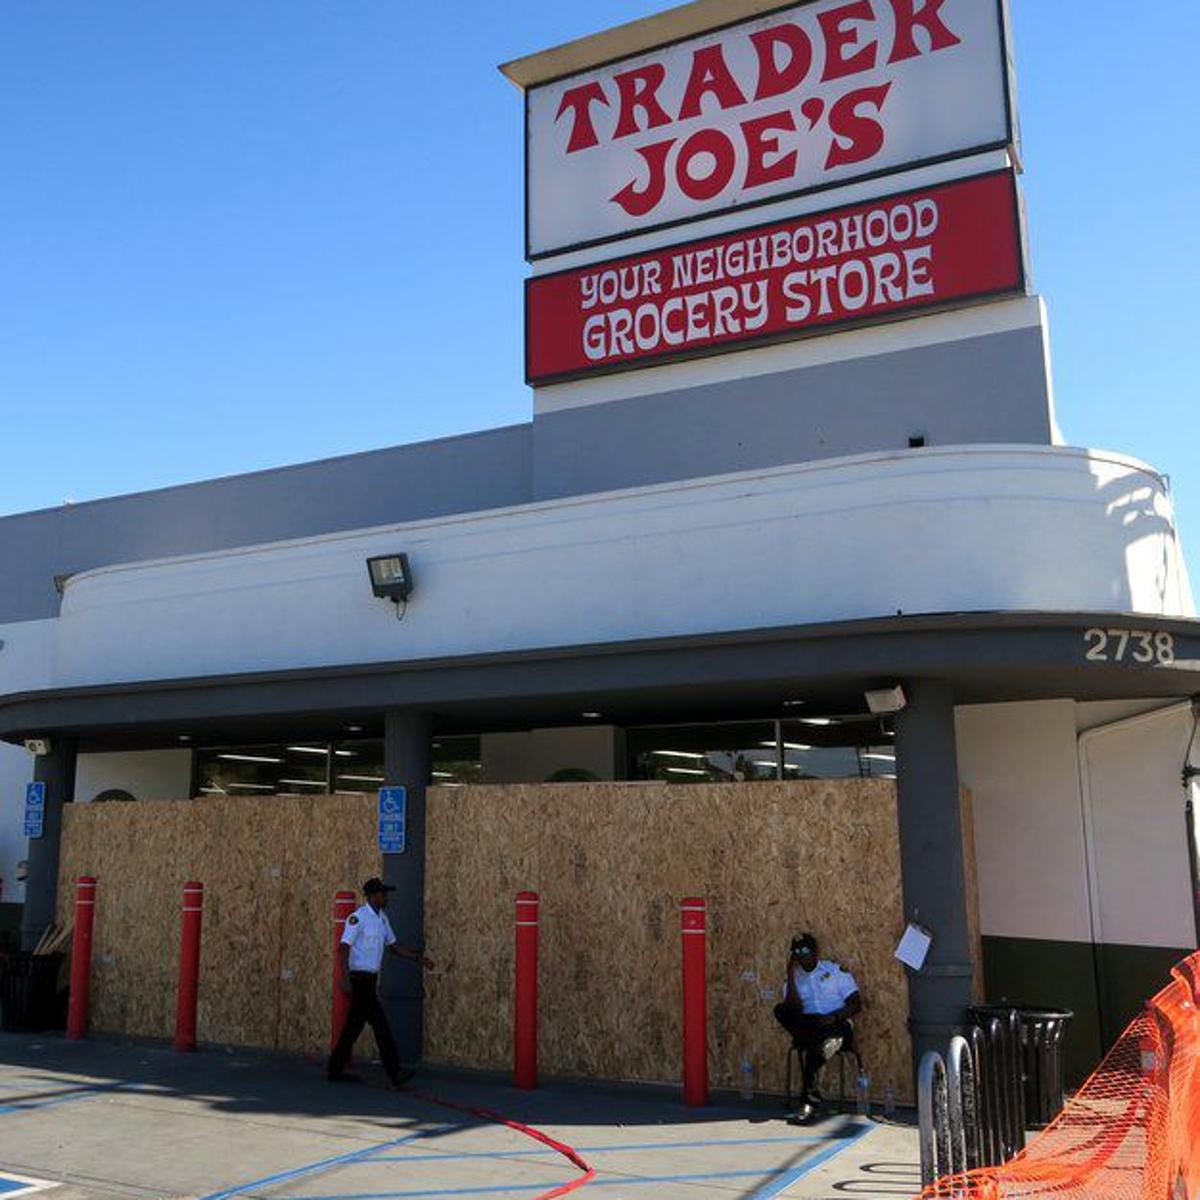 Silver Lake Trader Joe's customers and employees recount